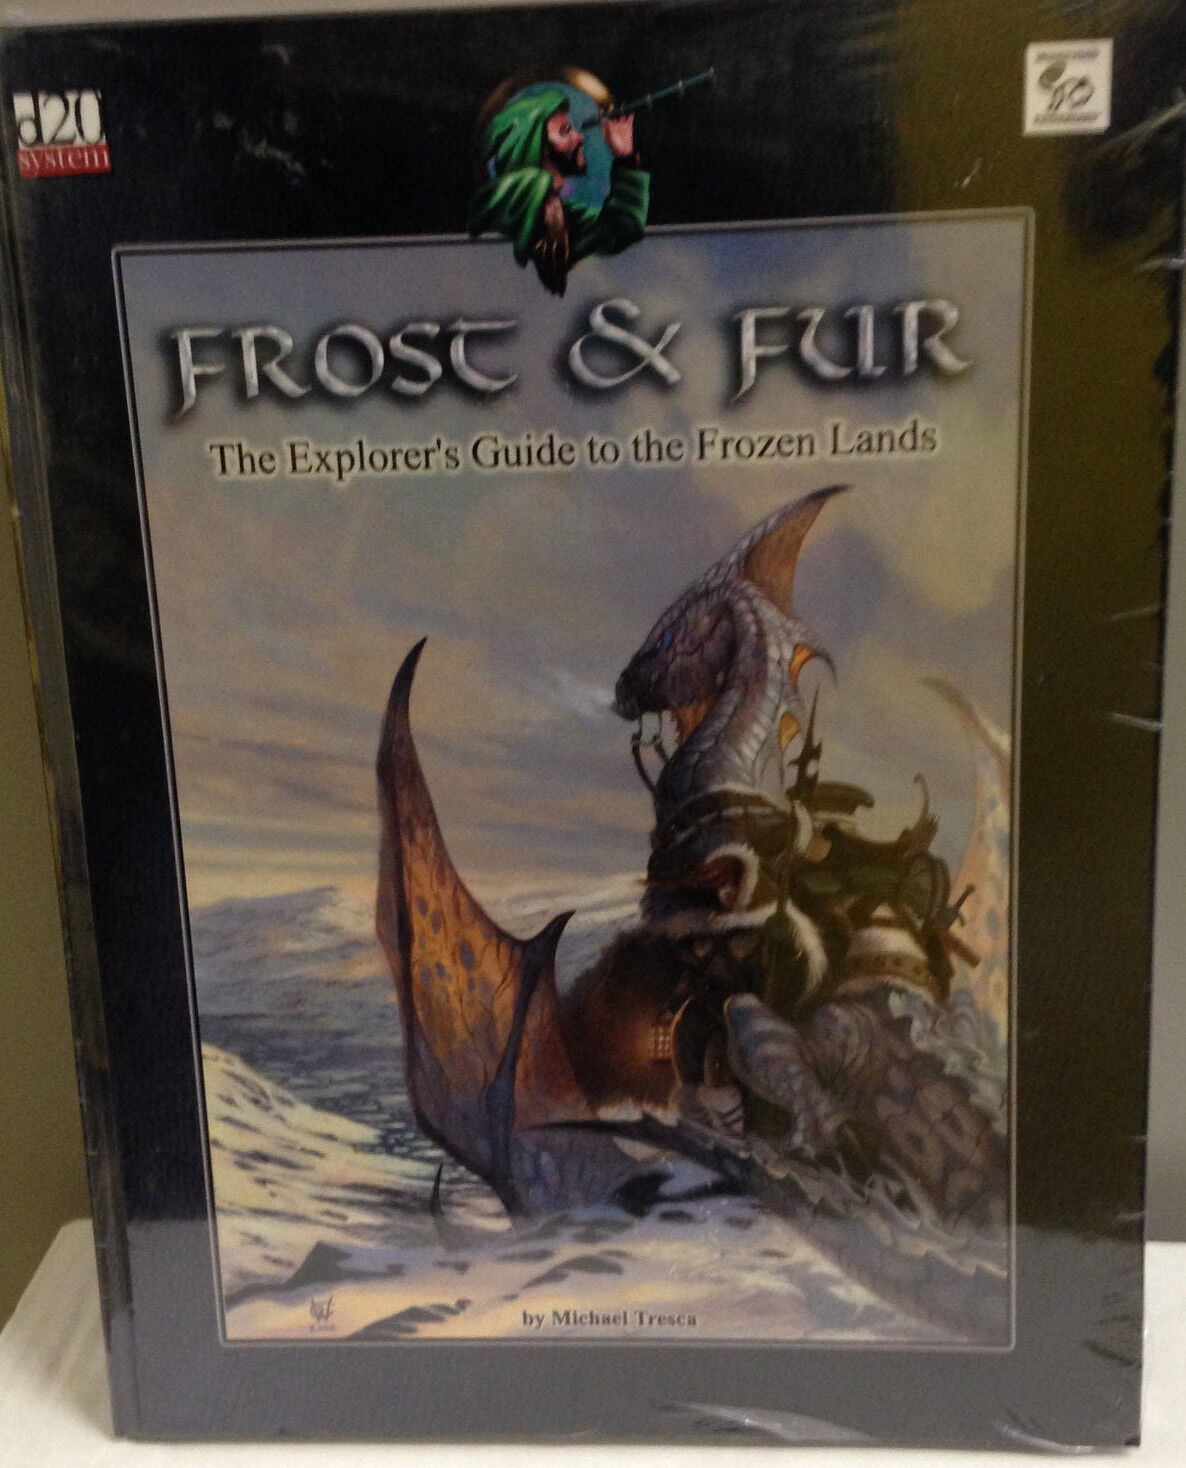 Frost & Fur : Explorers Guide to the Frozen Lands - Sealed